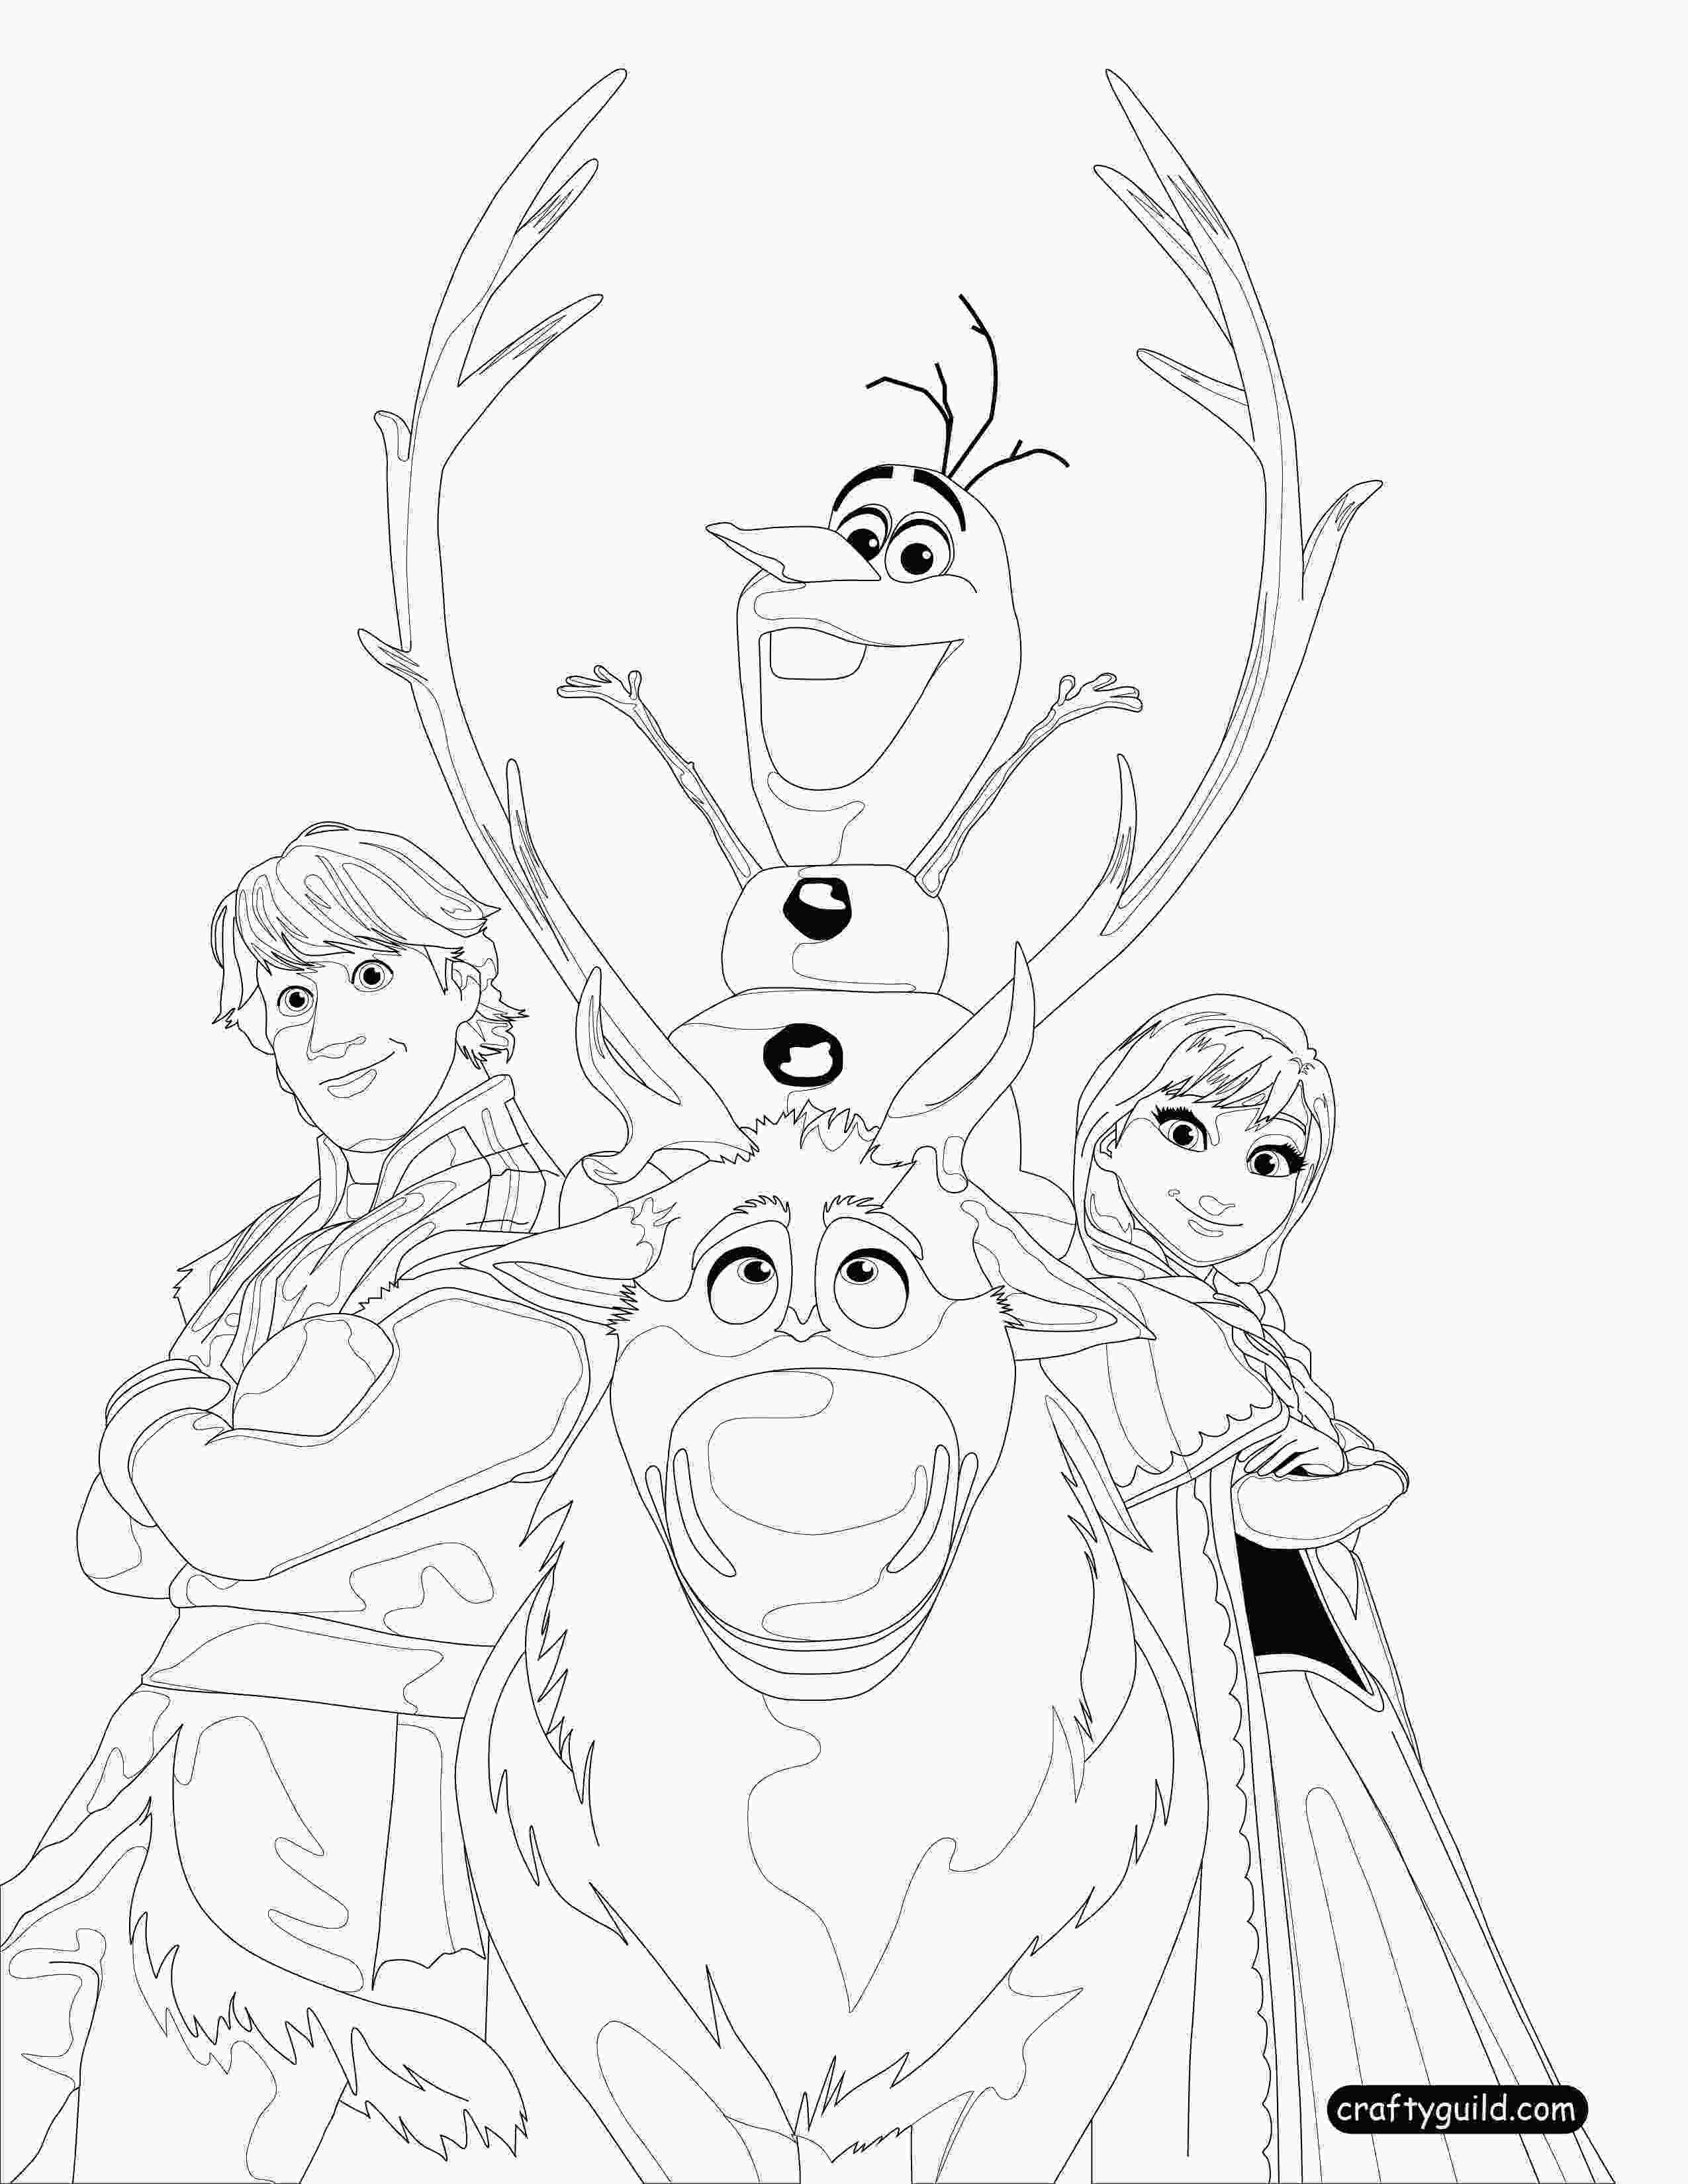 frozen 2 coloring sheets frozen coloring pages on crafty guild